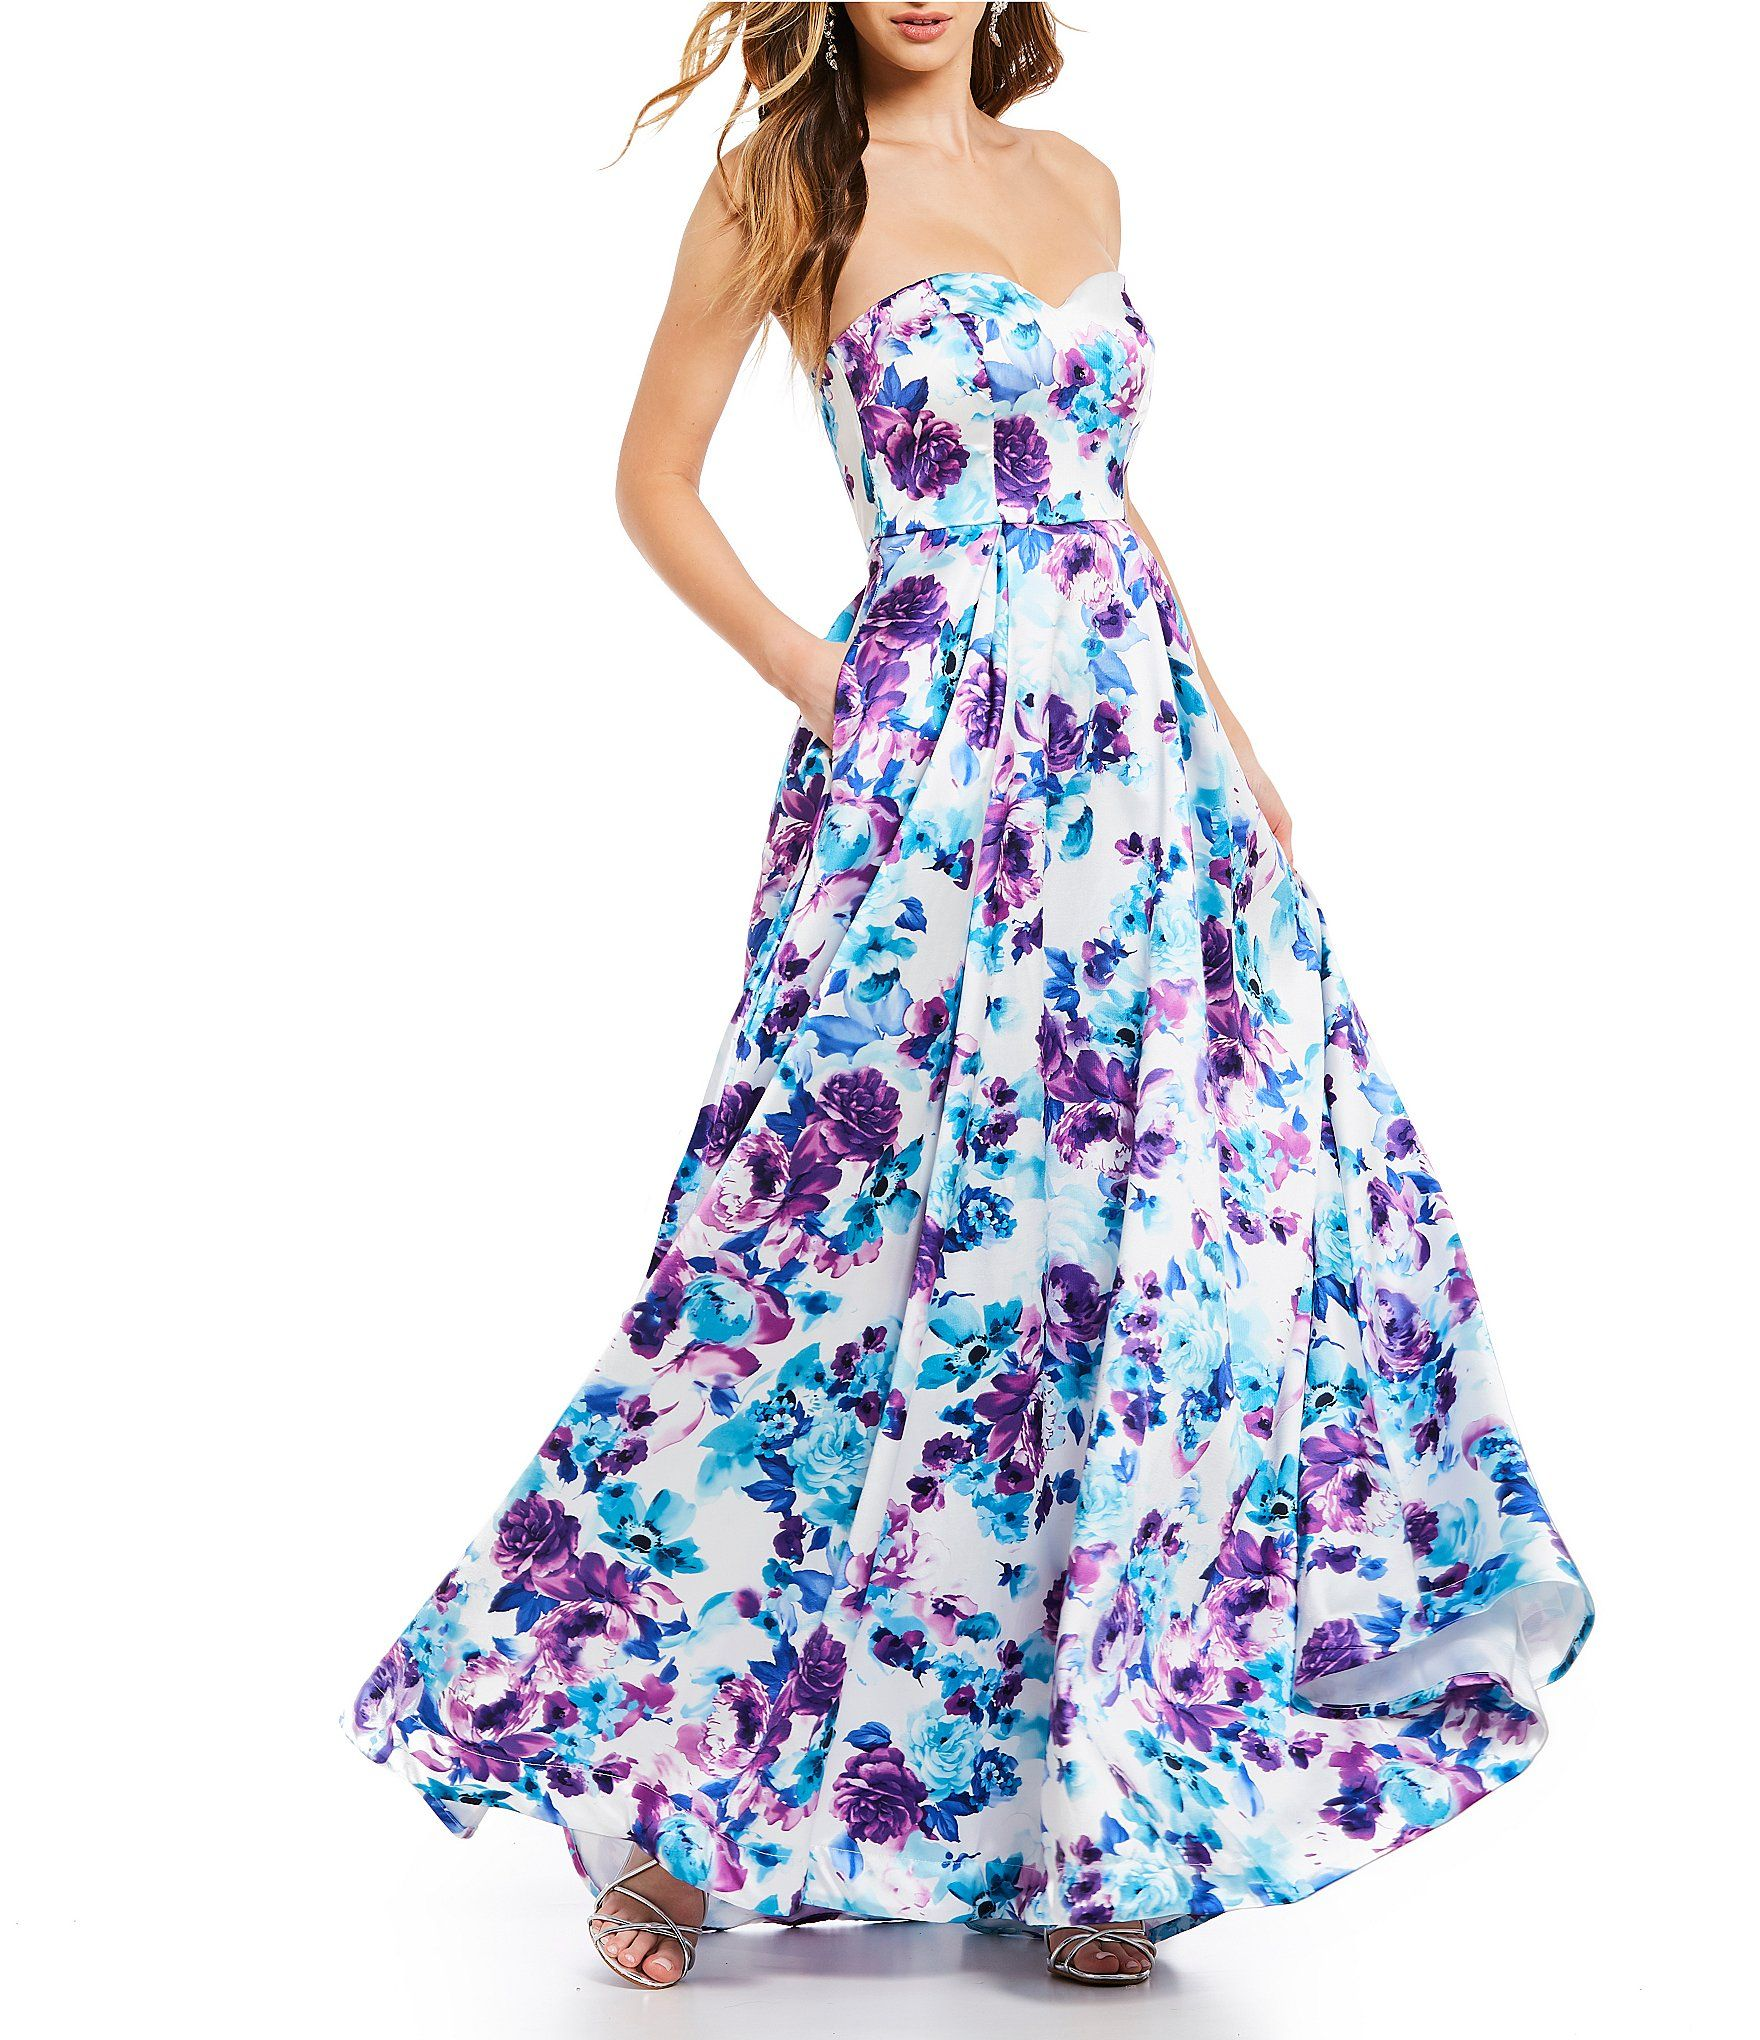 B darlin strapless sweetheart neckline floral ball gown in i